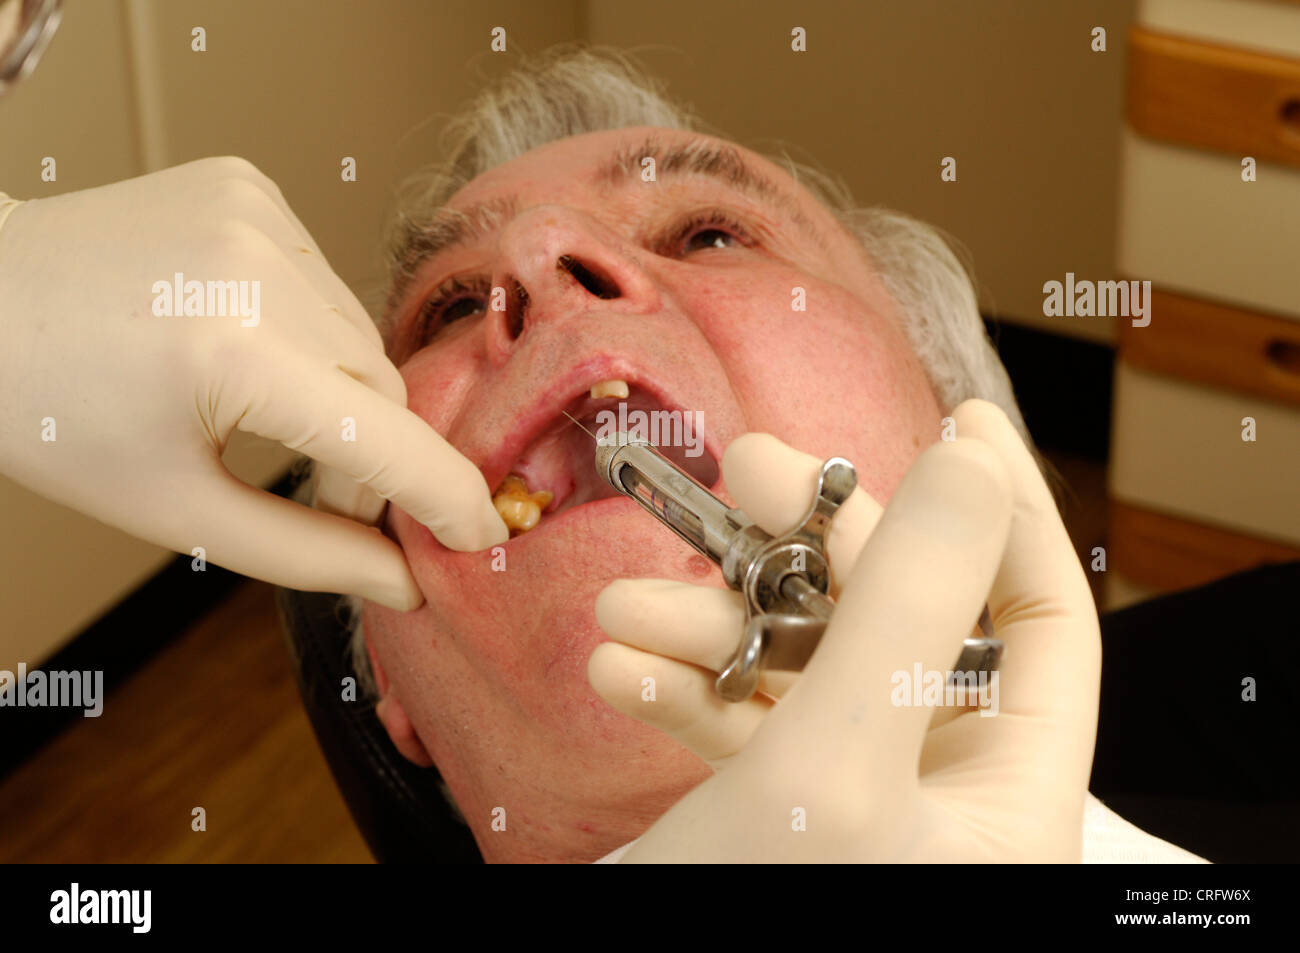 Close-up of an elderly man having a pain-killing anaesthetic injected into his gums before the start of surgery. - Stock Image